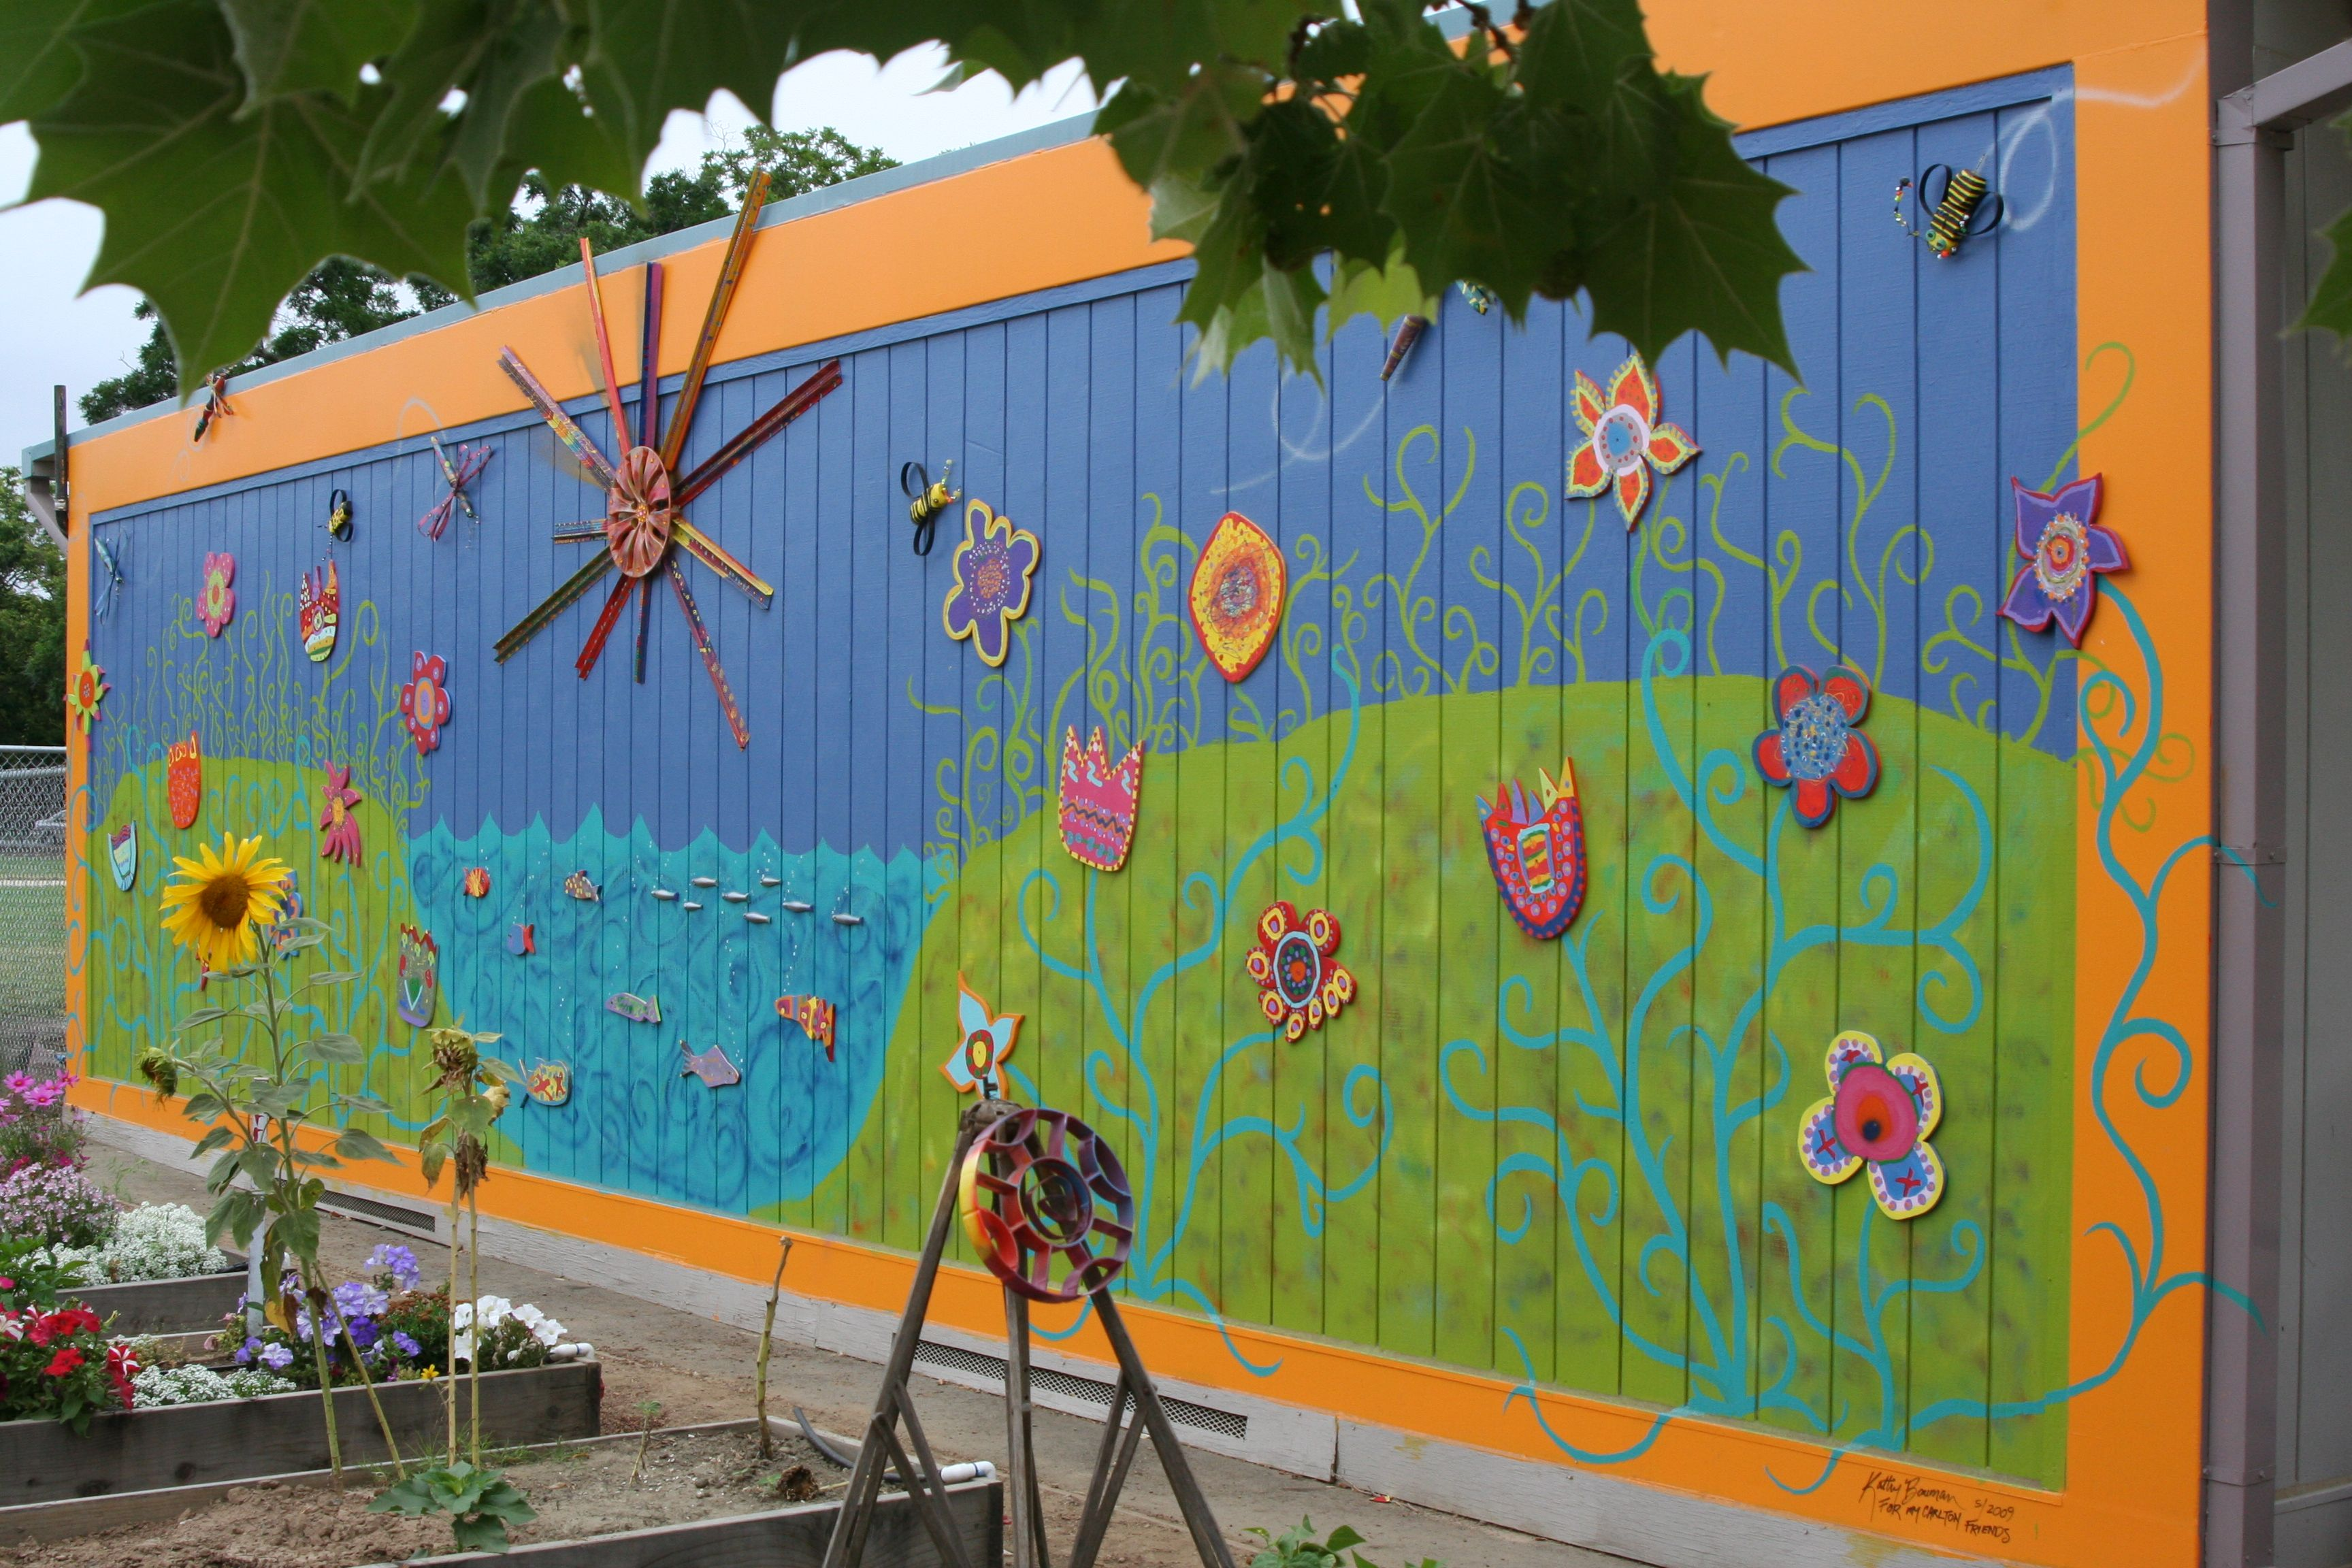 A mural painted at a school the sun dragonflies bees for Dragonfly mural